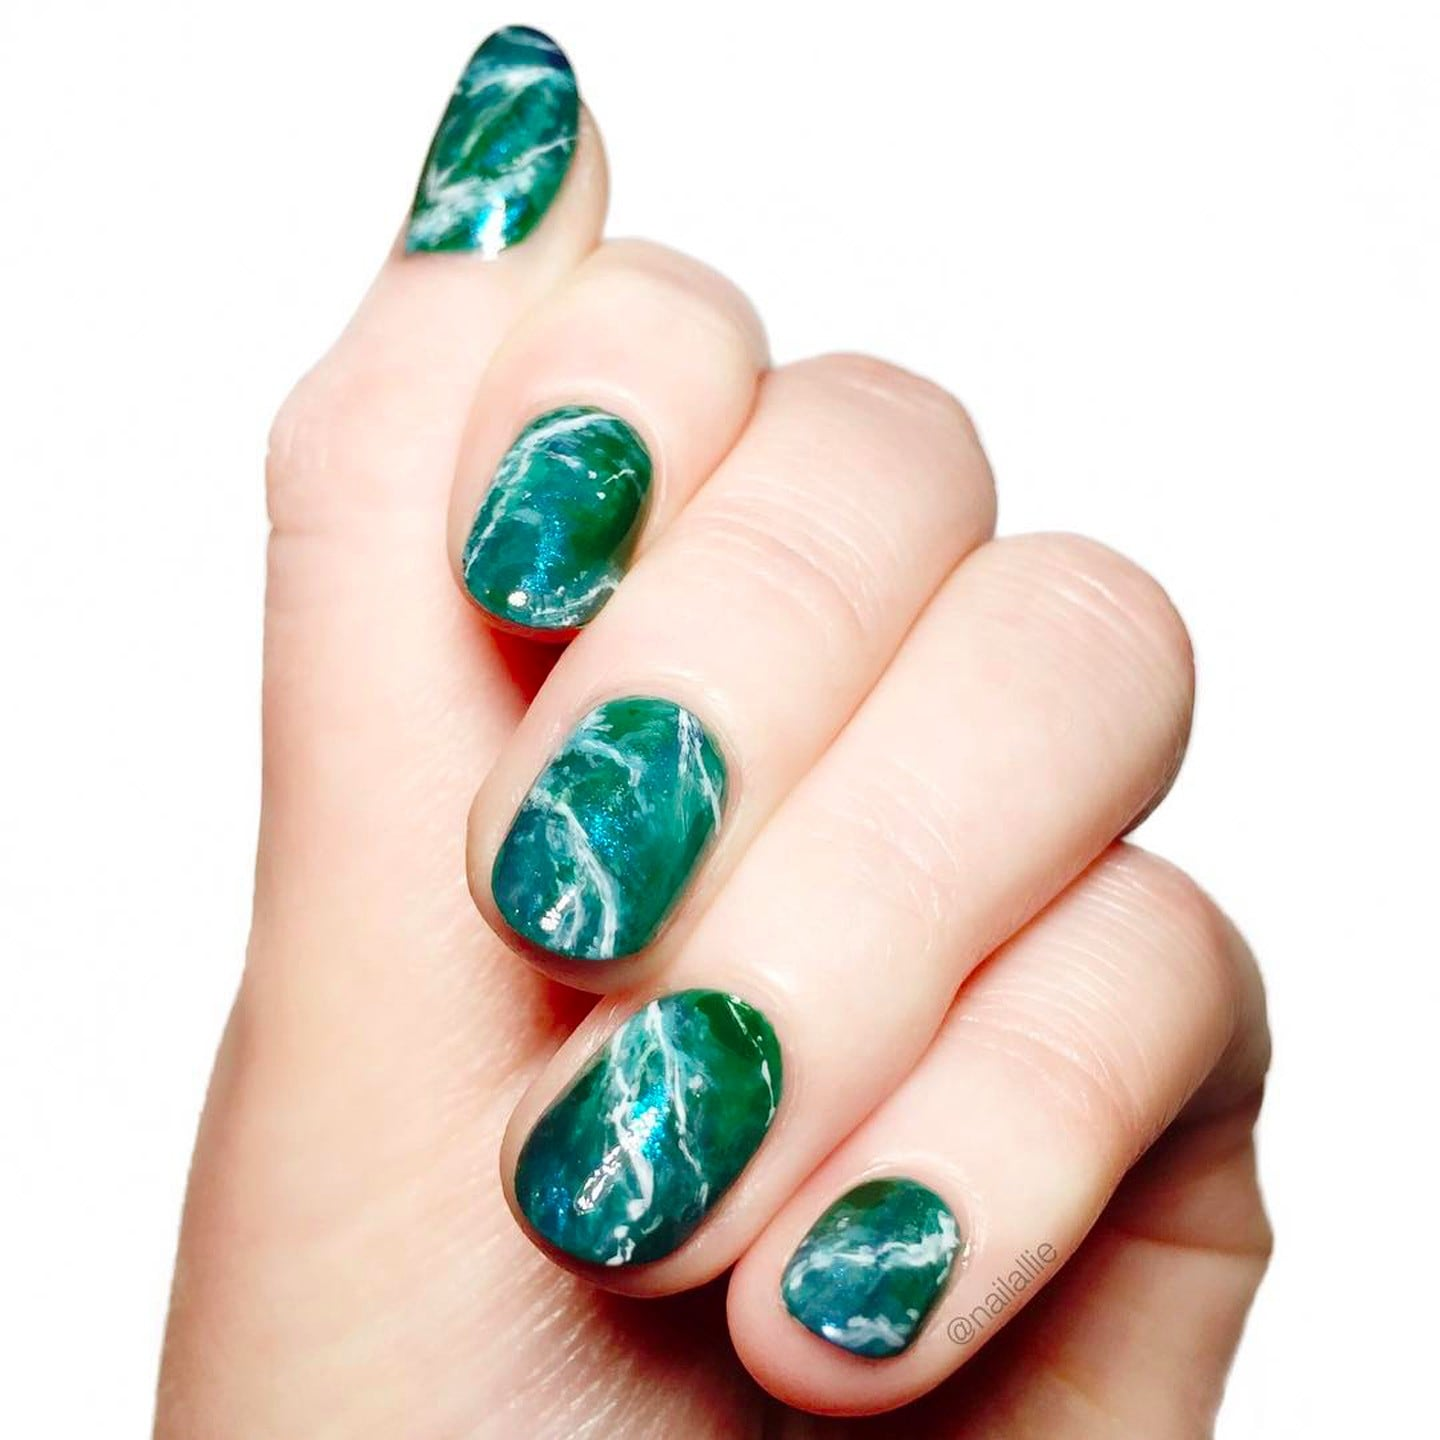 Ocean-Inspired Marble Nails | POPSUGAR Beauty UK